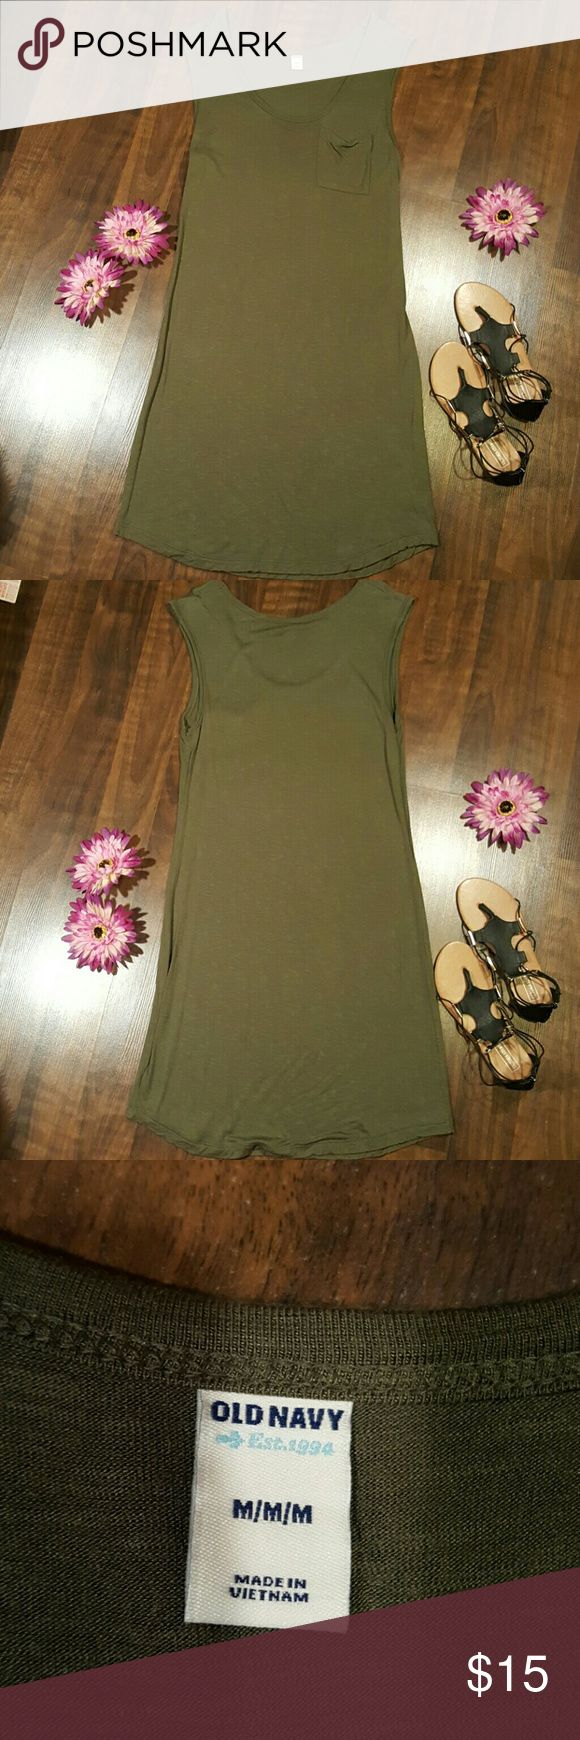 Summer dress So soft! Light summer sleeveless dress.  Gently used, great condition! Only worn once.  100% Rayon Heather green color Size Medium  Back neckline to bottom hem measures 35.5 inches Old Navy Dresses Midi